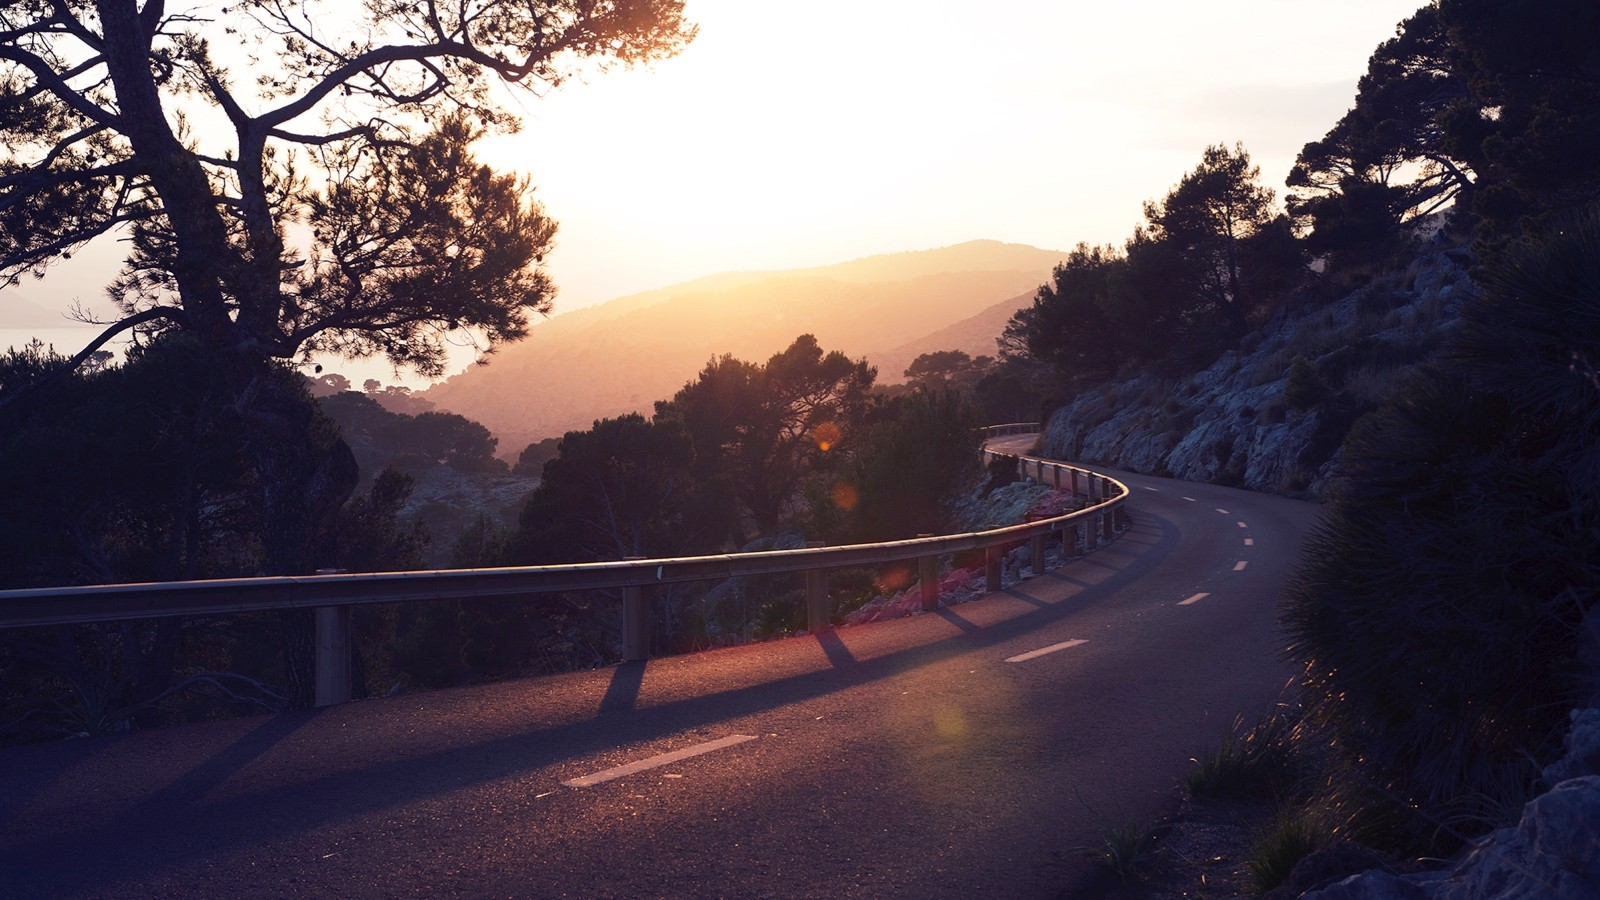 After selling Van Nicholas, founder Jan-Willem Sintnicolaas moved to Mallorca in search of beautiful roads